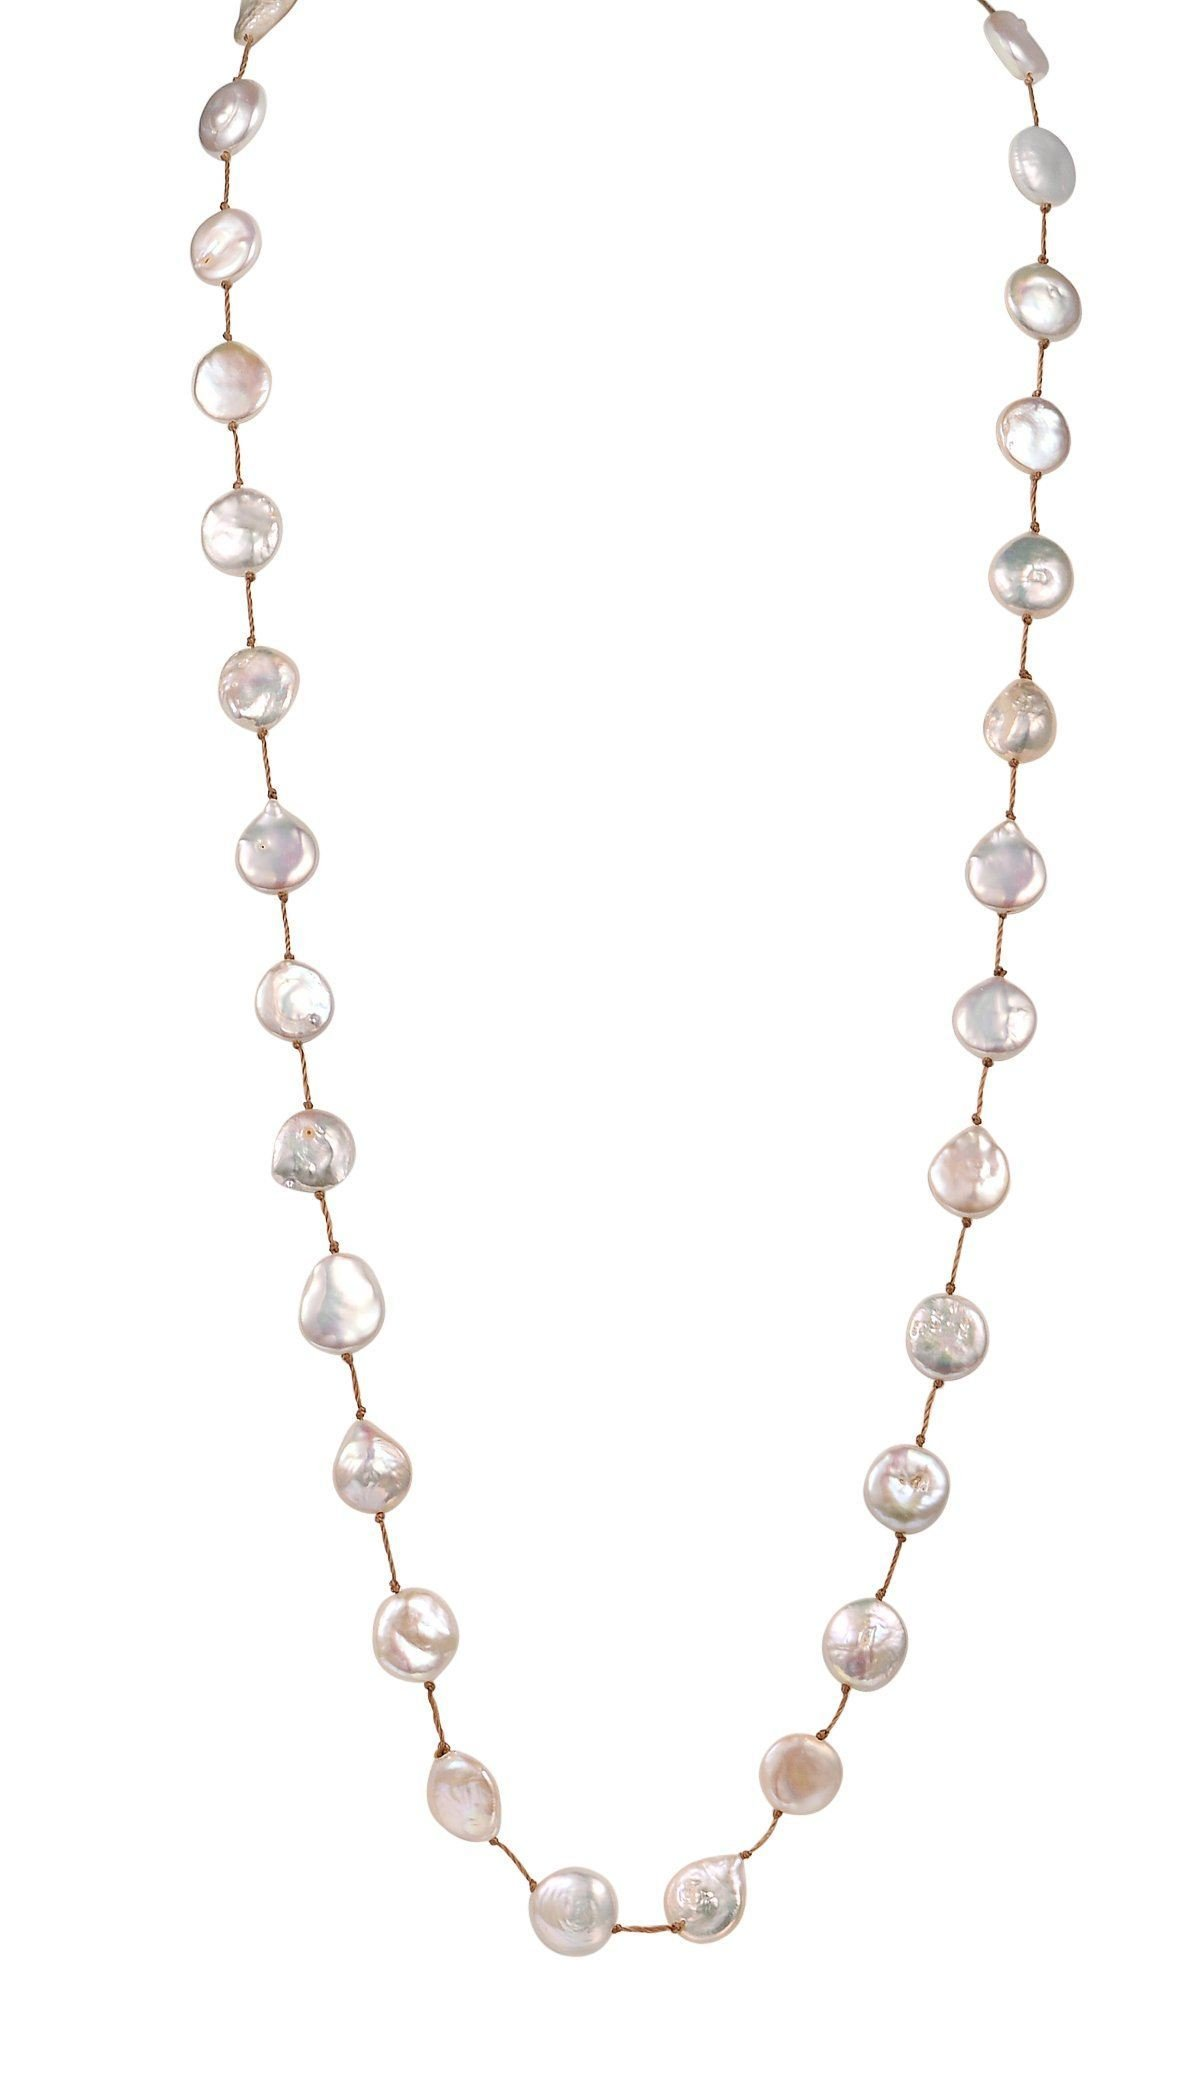 Long Coin Shaped Pearl Cord Necklace, Oxidized Silver, White Cultured Freshwater Pearls